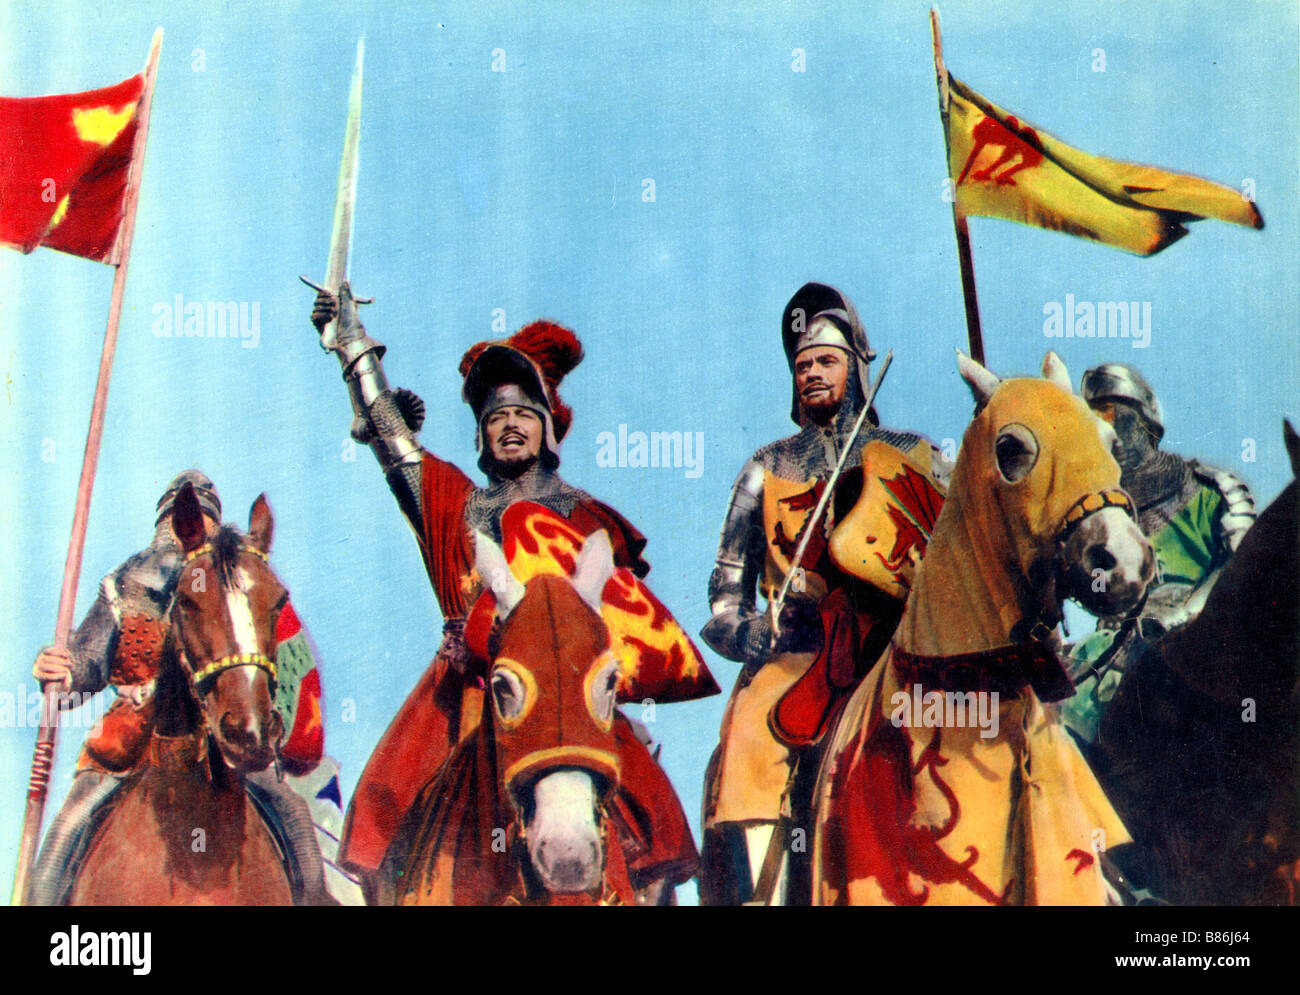 Les Chevaliers De La Table Ronde Knights Of The Round Table Ann E Stock Photo Royalty Free